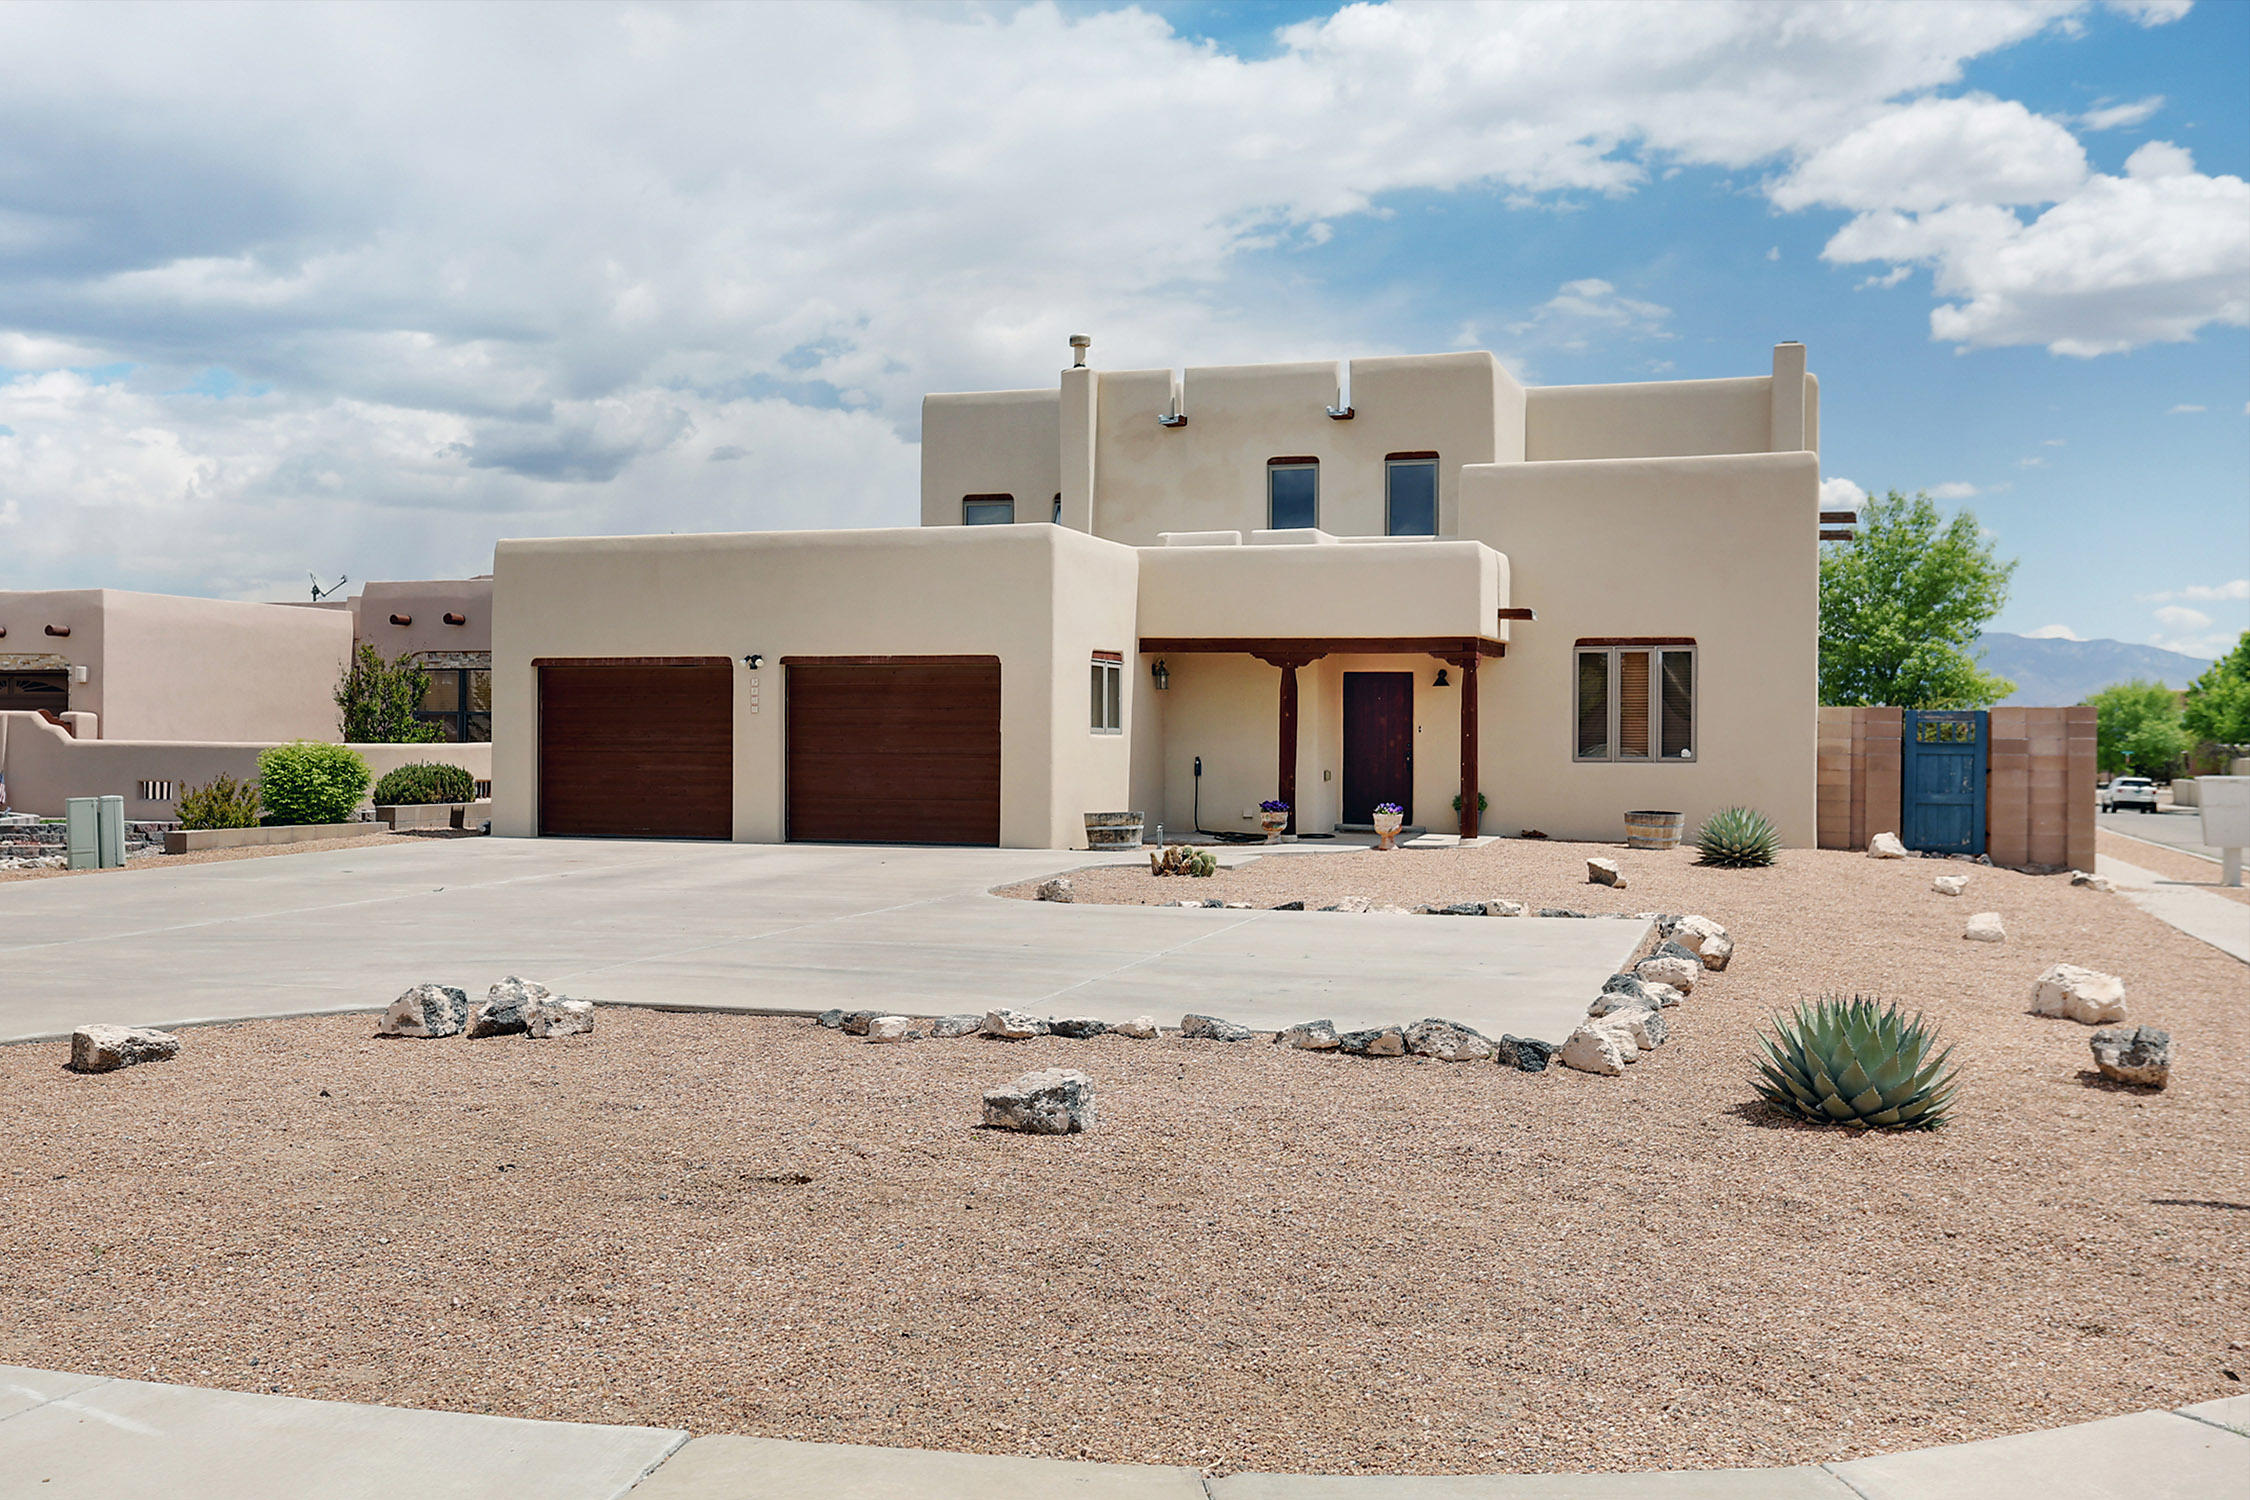 9800 NW Bajada Drive, Northwest Albuquerque and Northwest Heights, New Mexico